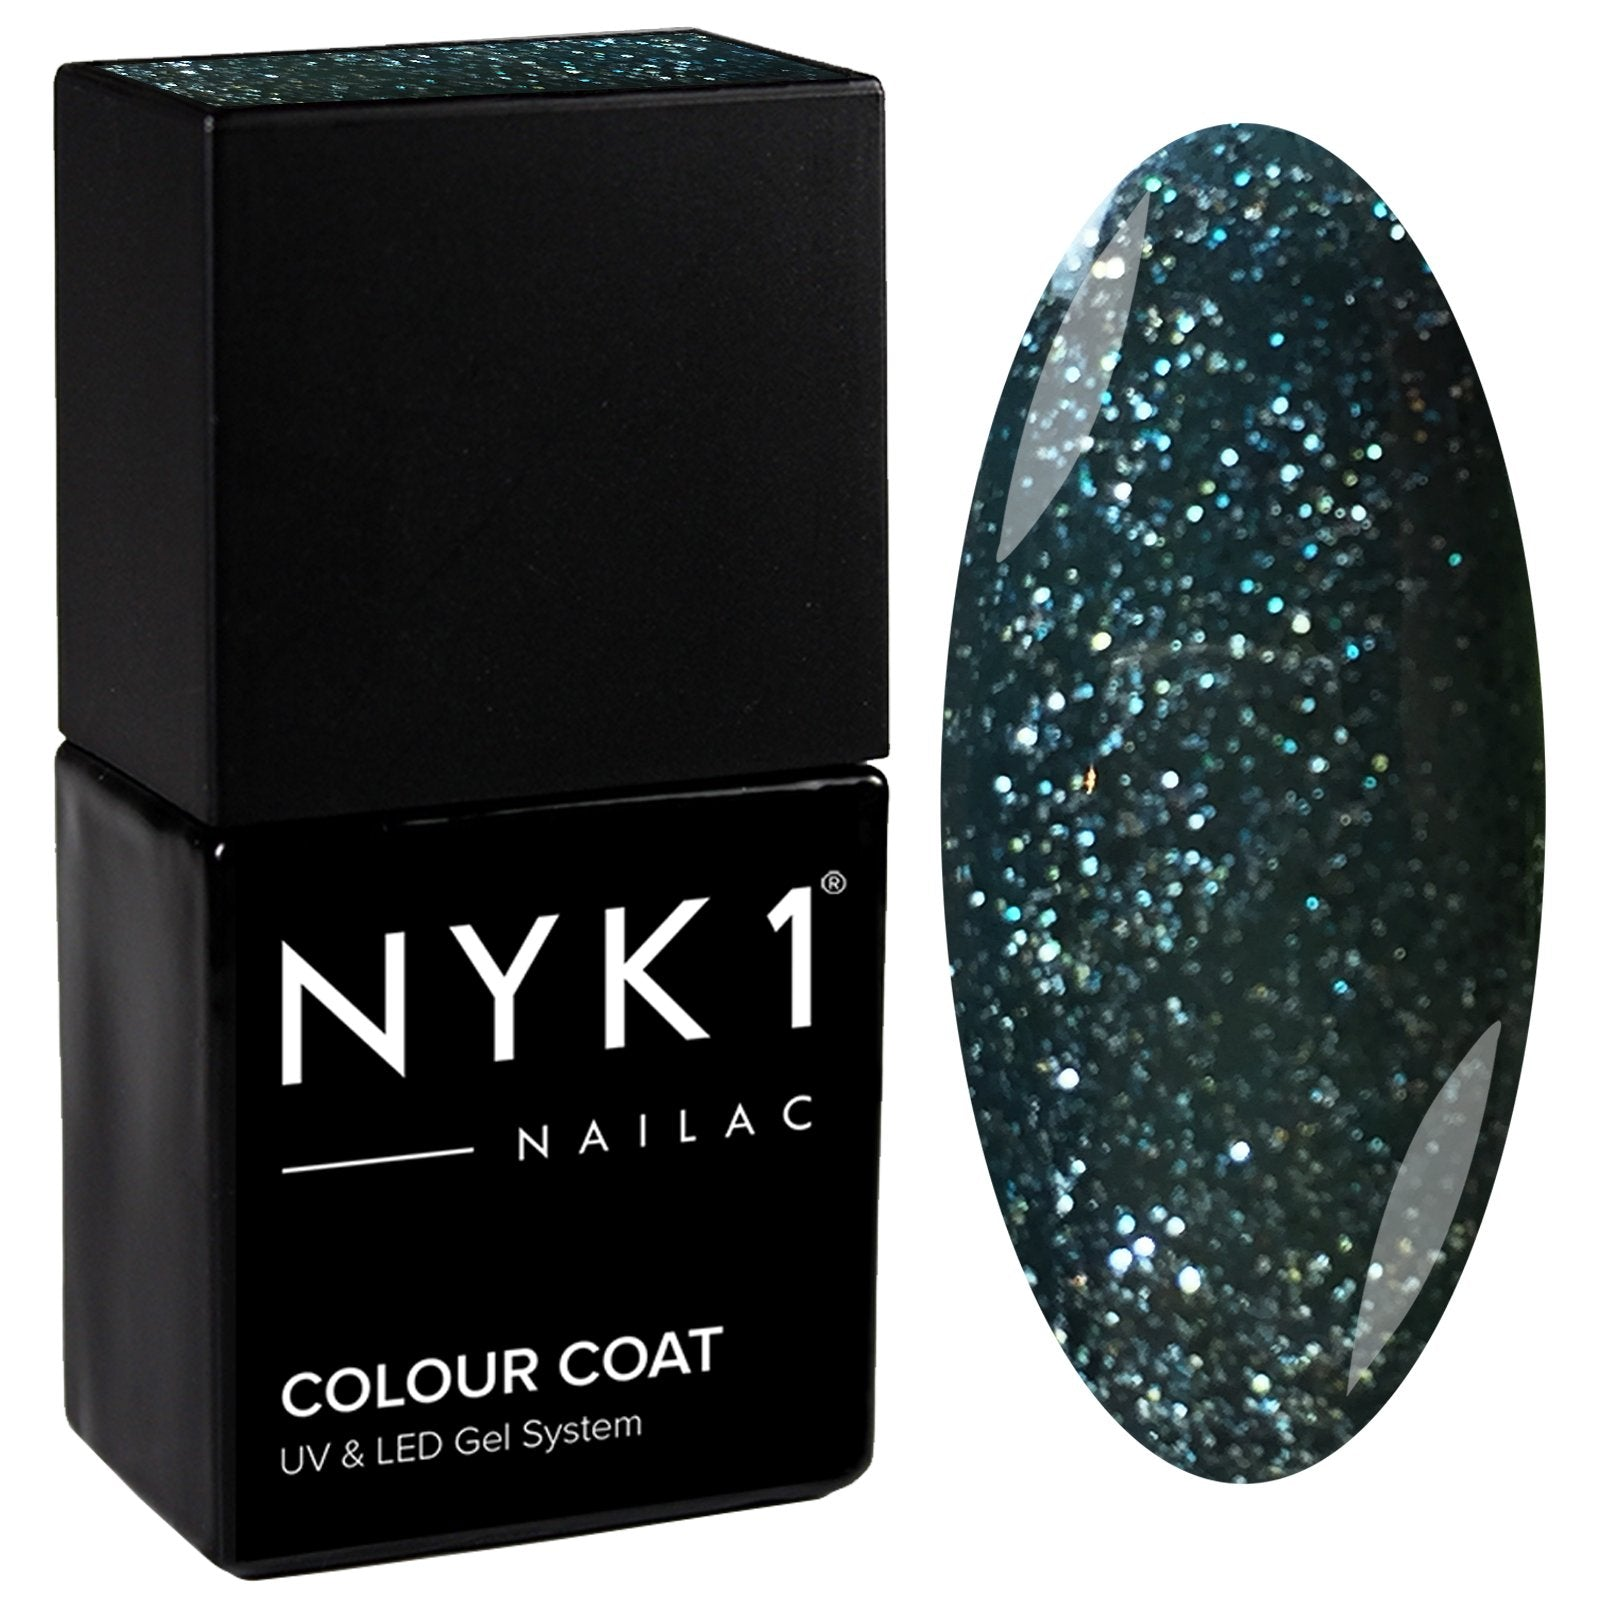 NYK1 Nailac Holly Green Glitter Sparkle Gel Nail Polish